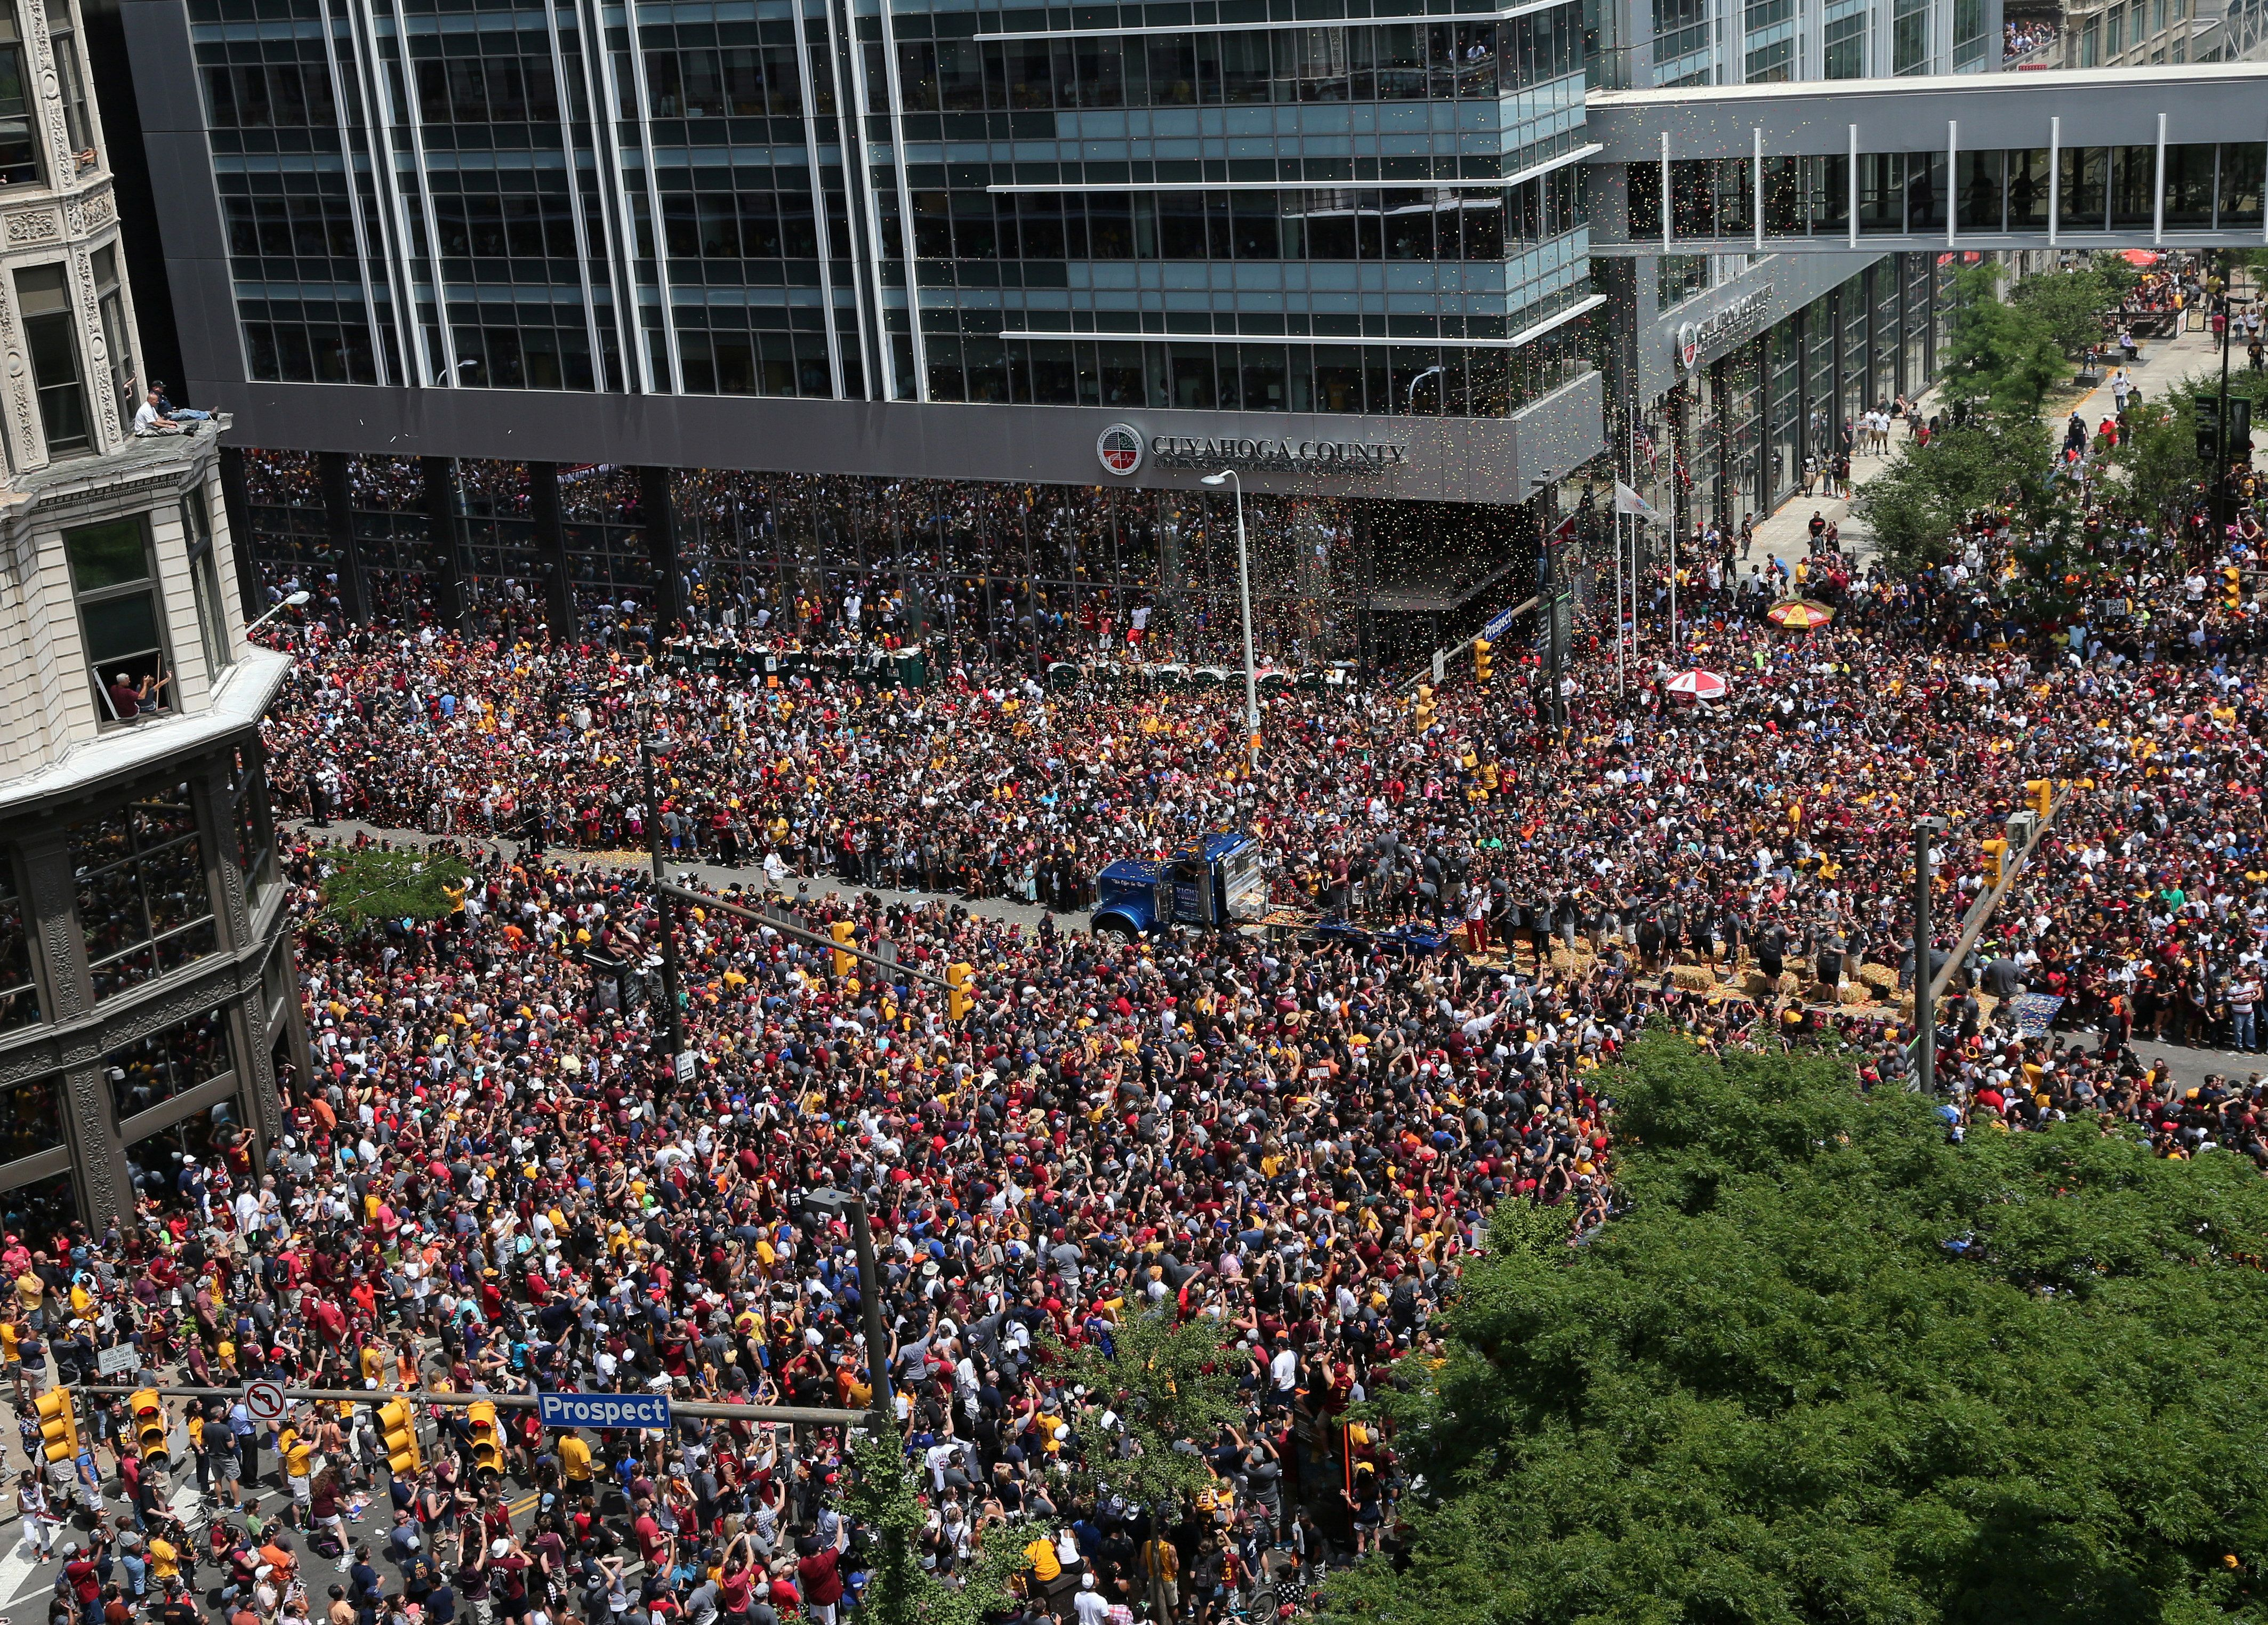 Cleveland Cavaliers fans celebrate the Cavaliers 2016 NBA Championship in downtown Cleveland, Ohio, U.S. June 22, 2016.  REUTERS/Aaron Josefczyk